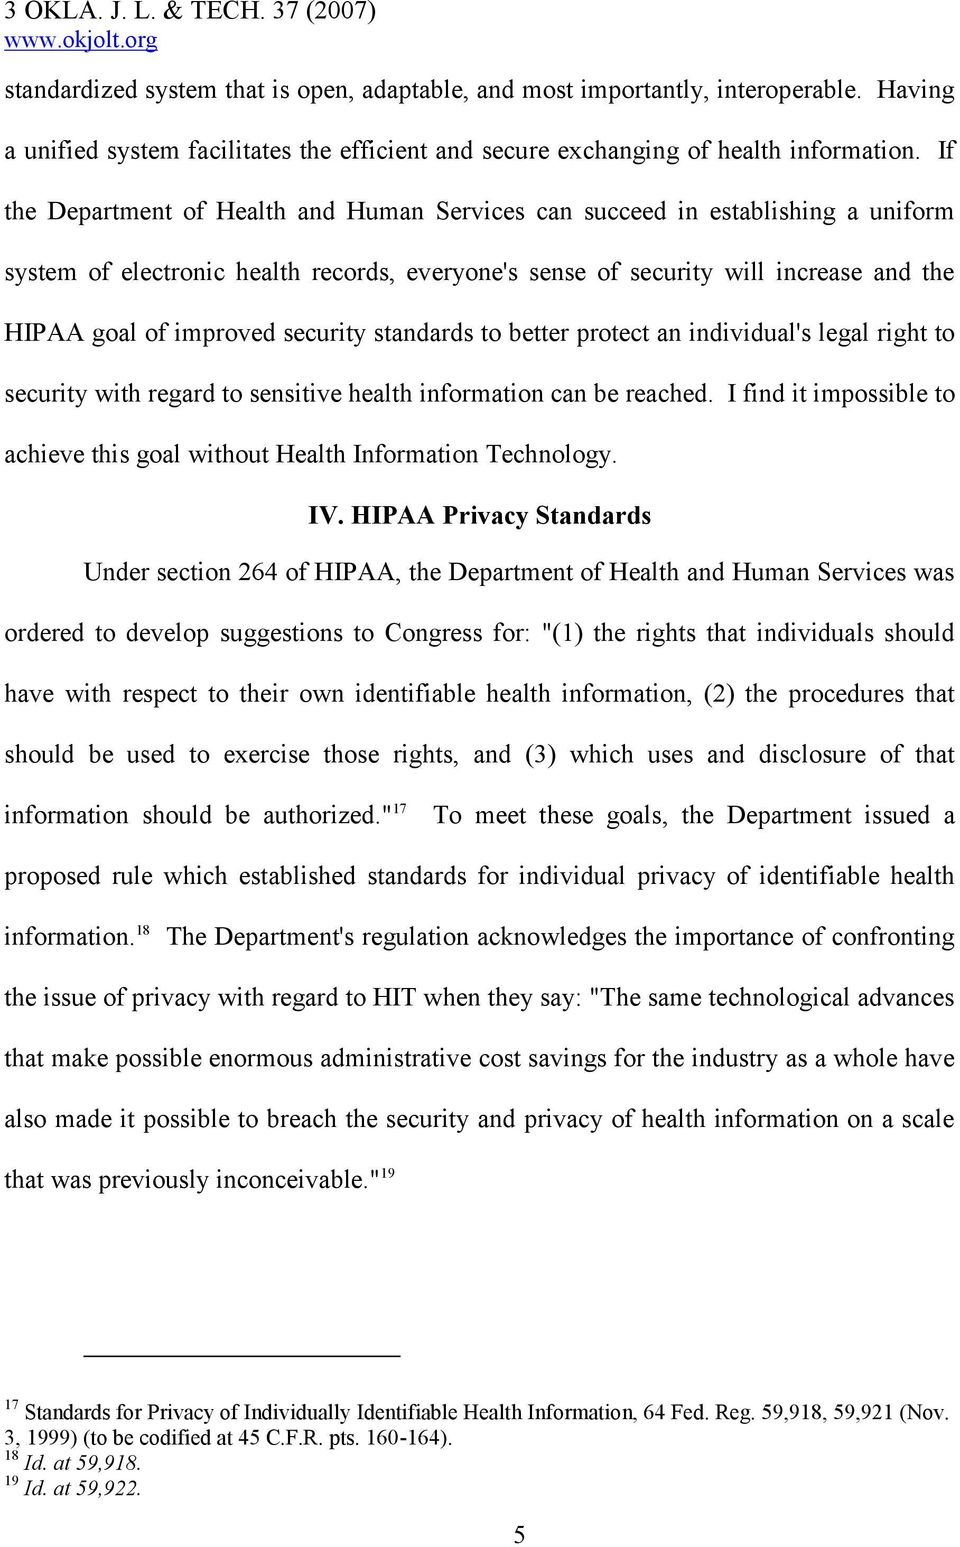 security standards to better protect an individual's legal right to security with regard to sensitive health information can be reached.